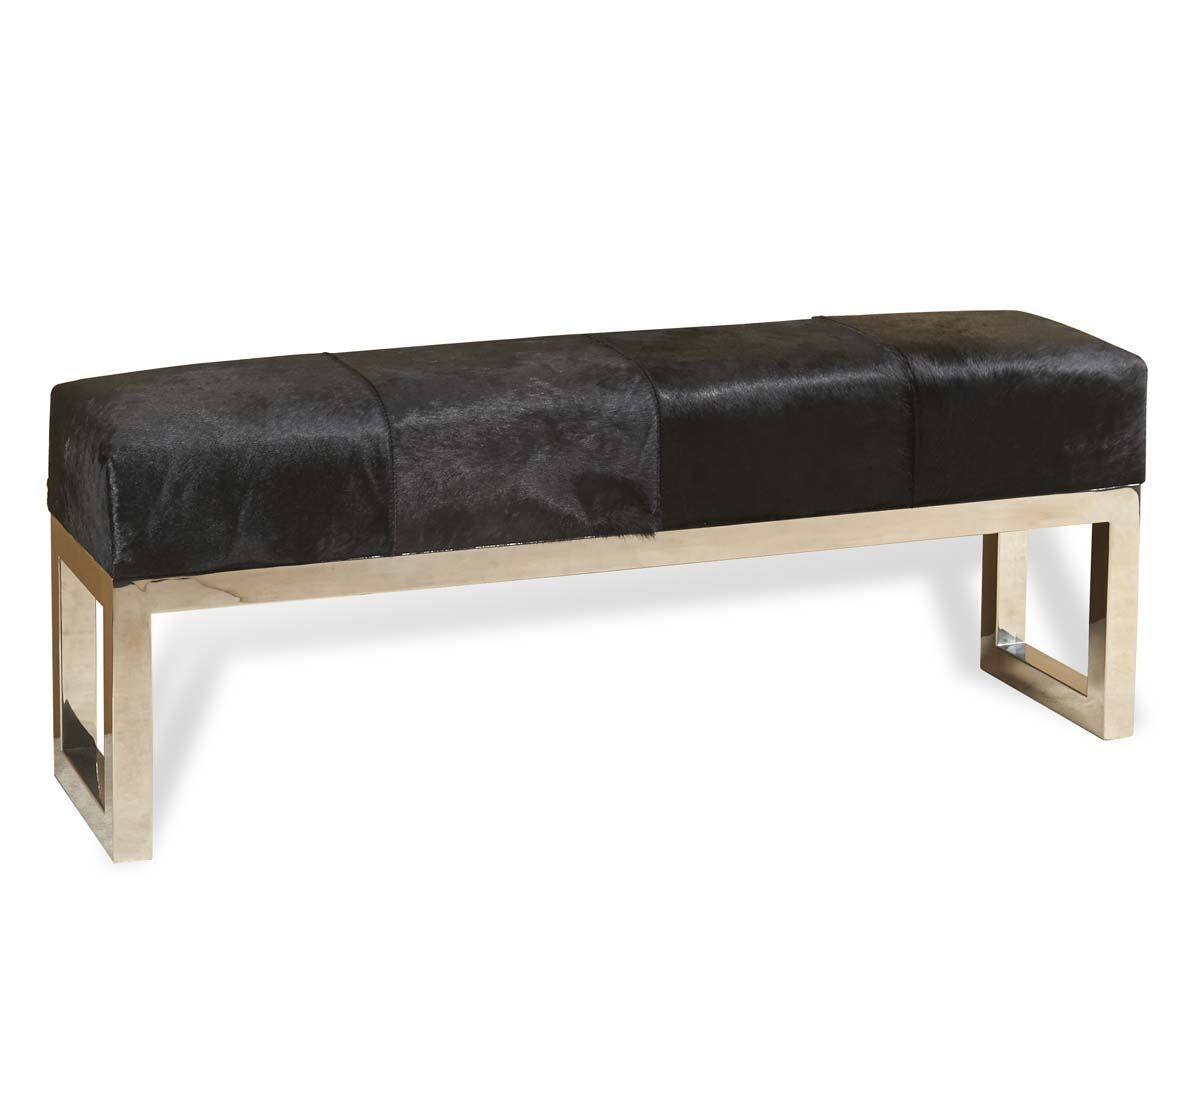 Cow Skin Bench Buscar Con Google Cowhide Bench Steel Bench